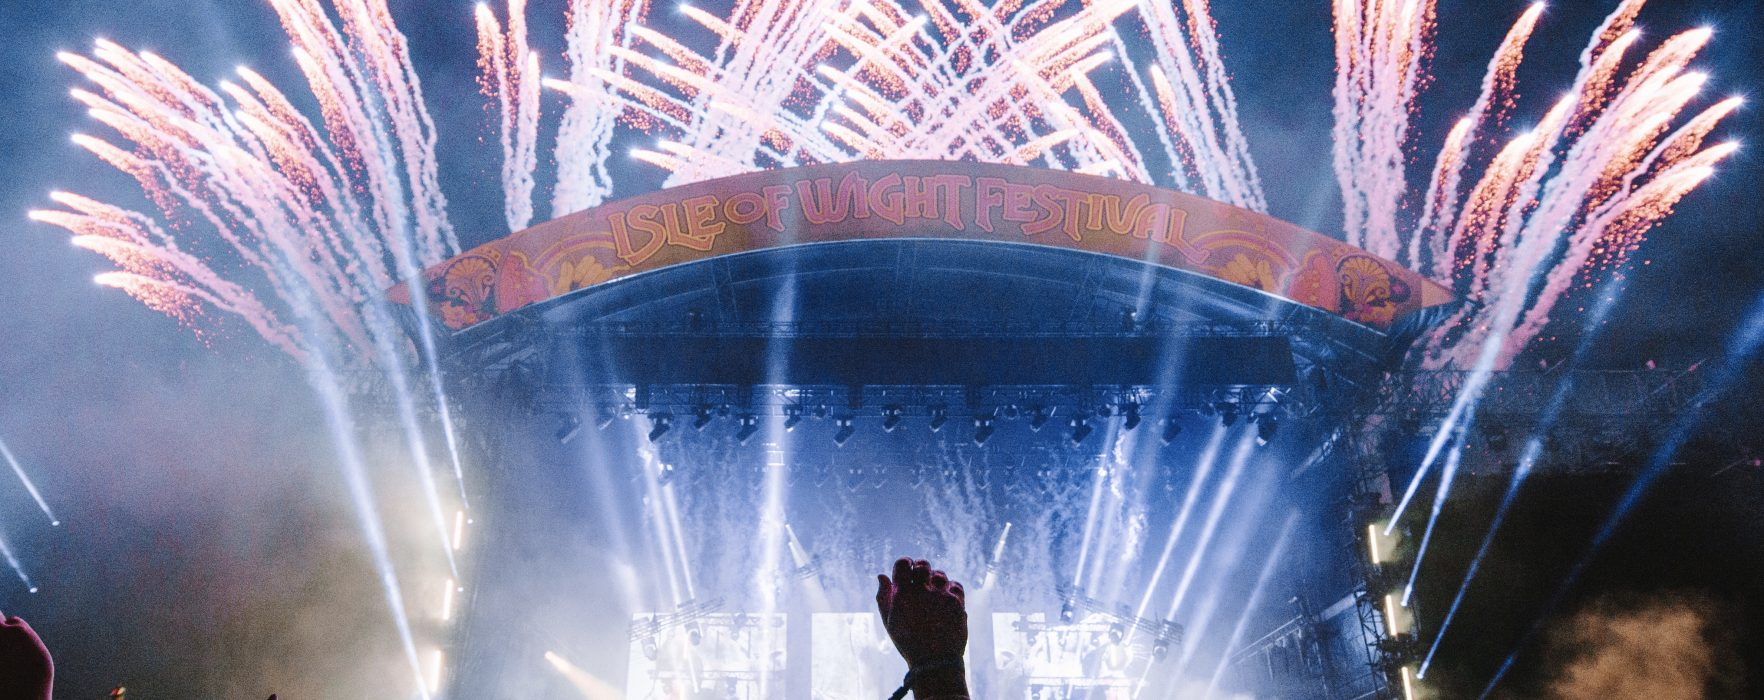 WIN TICKETS TO THE ISLE OF WIGHT FESTIVAL 2018!